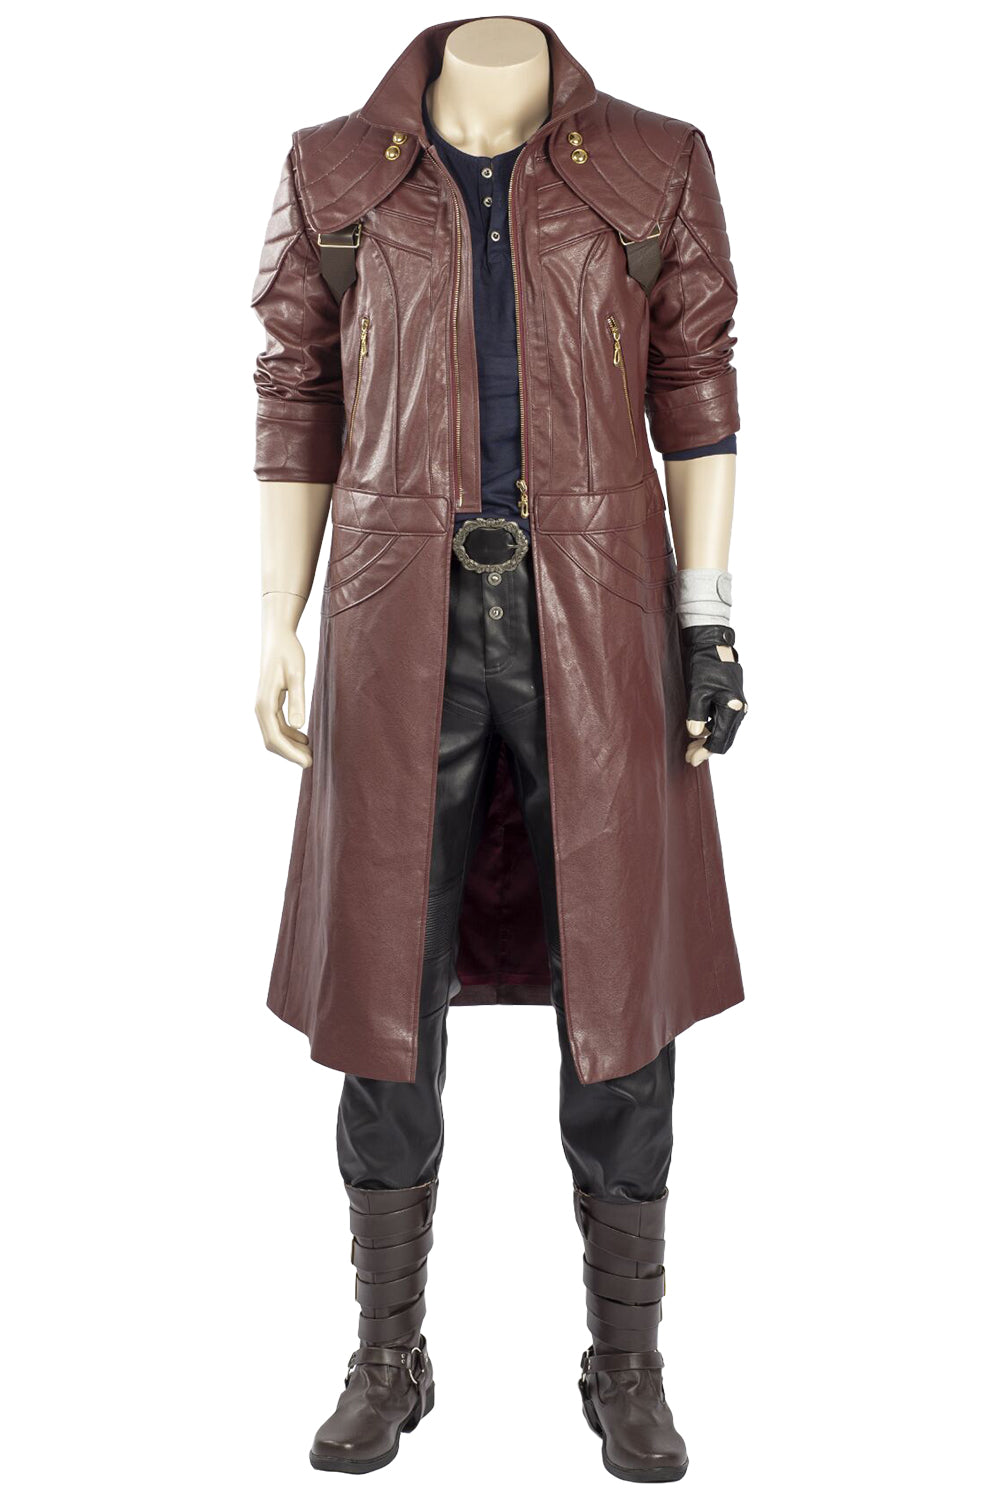 Devil May Cry 5 Dante Outfit Trenchcoat Cosplay Costume